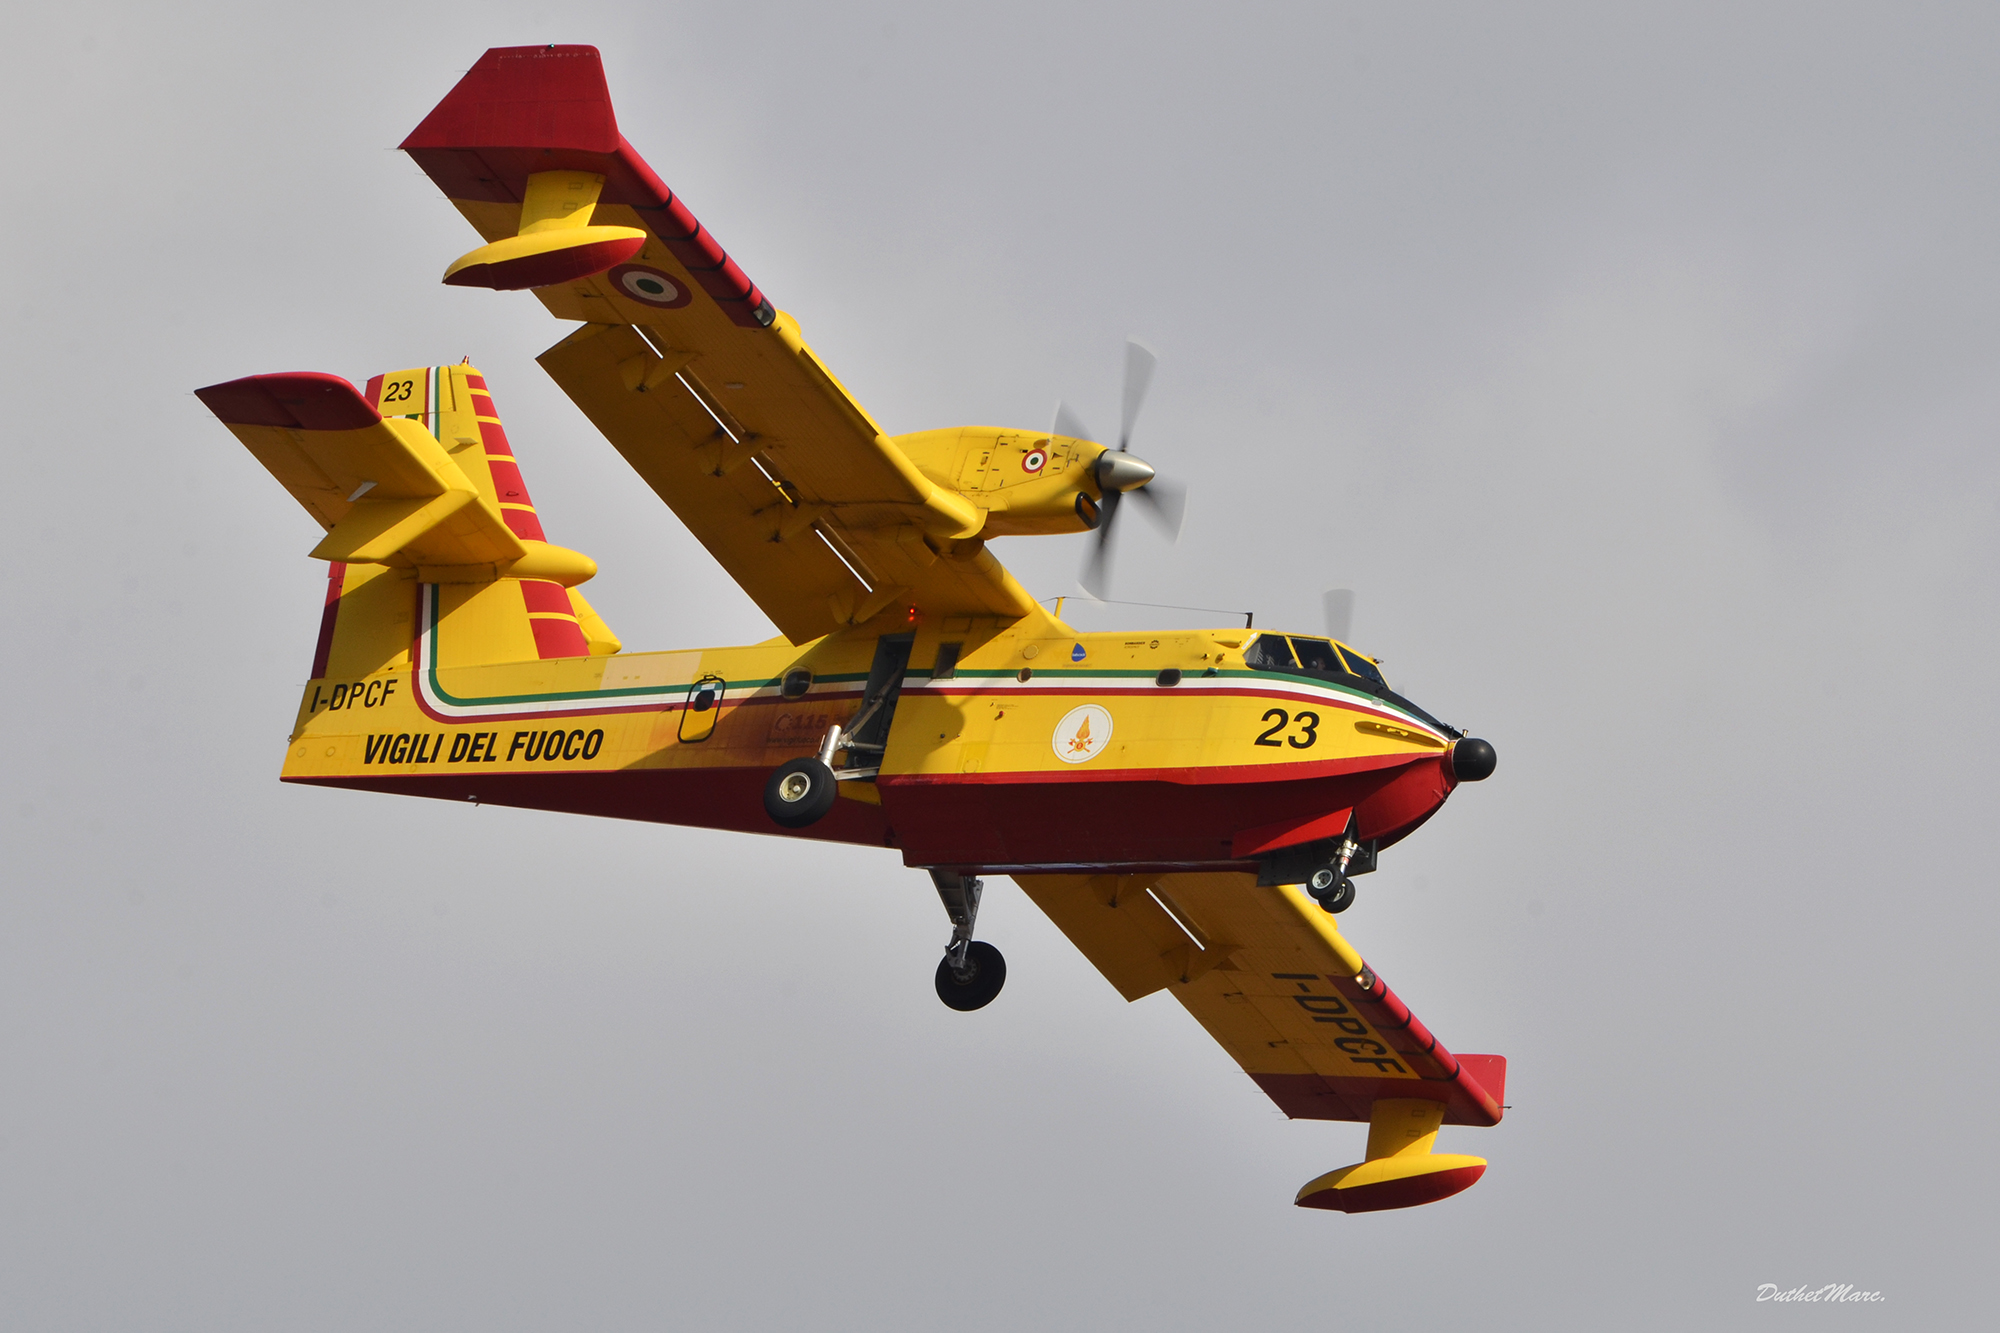 Aerial Firefighting 2017 37665844736_969535c424_o